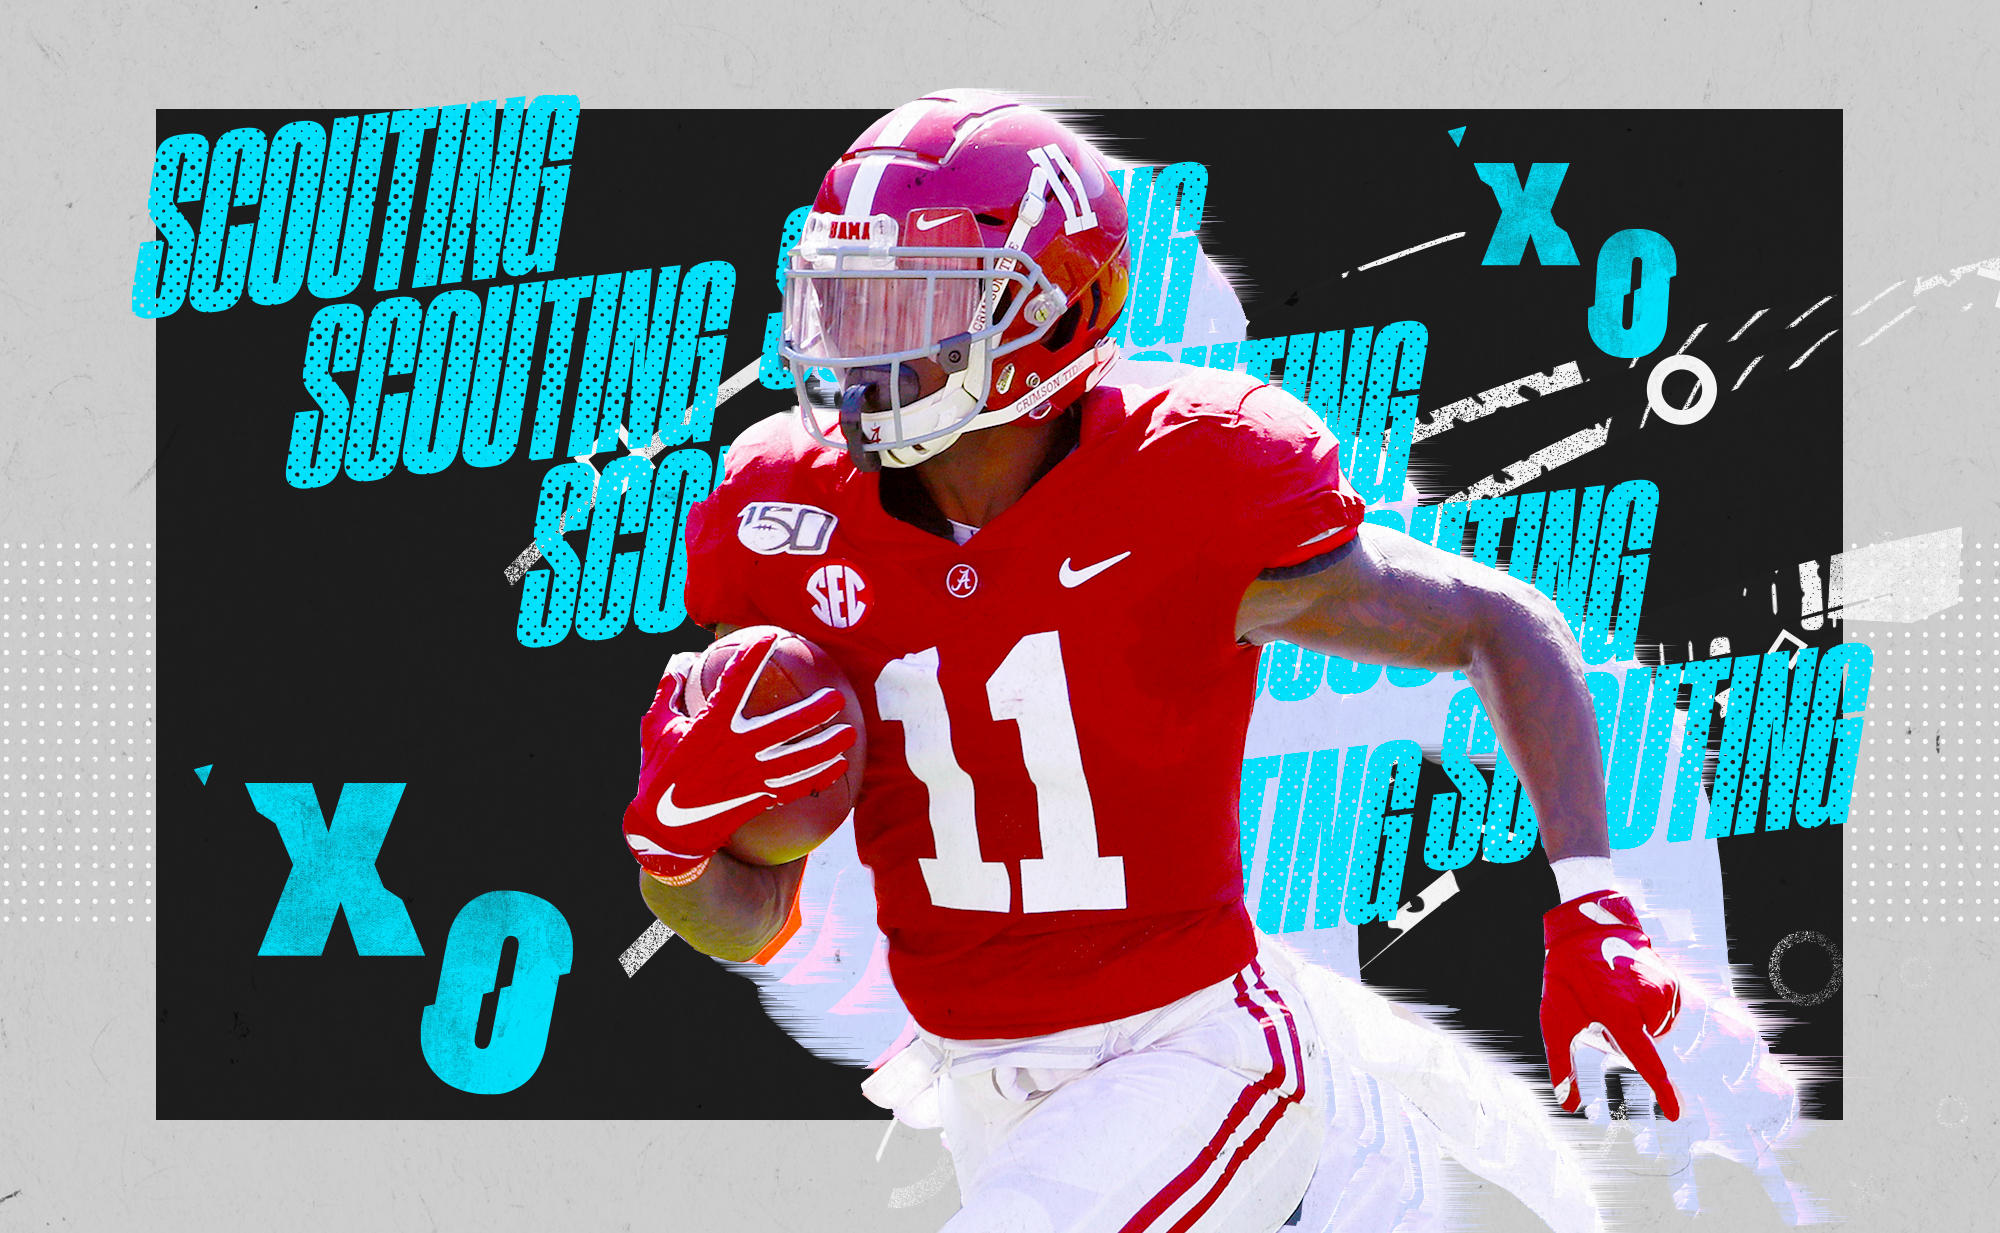 """An illustration of NFL WR prospect Henry Ruggs III running with the football at Alabama, superimposed on a blue and white background with """"SCOUTING"""" and """"X""""s and """"O""""s in aqua lettering"""